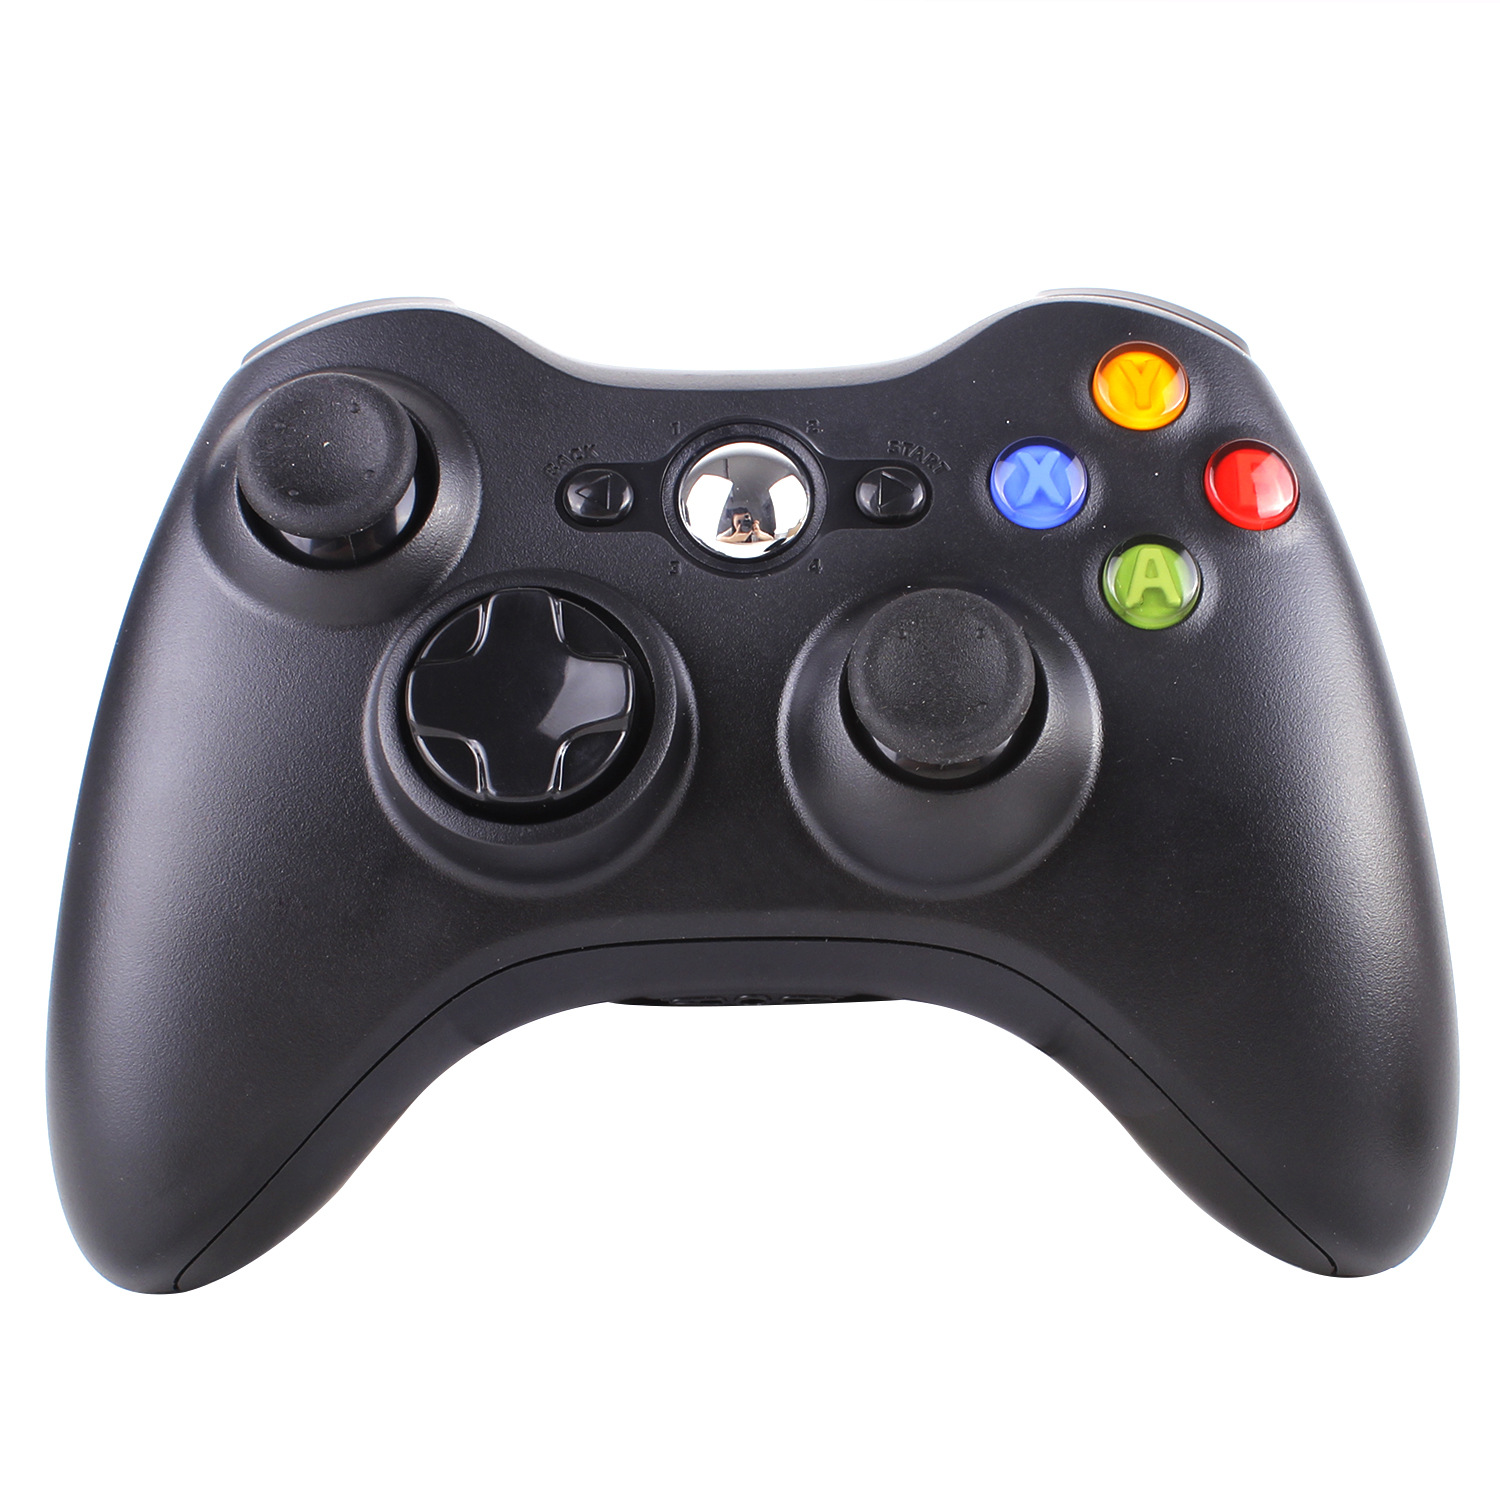 DATA FROG 2.4GHz Wireless Dual-motor Vibration Feedback Game Controller Joystick Gamepad for Xbox 360 PS3 PC